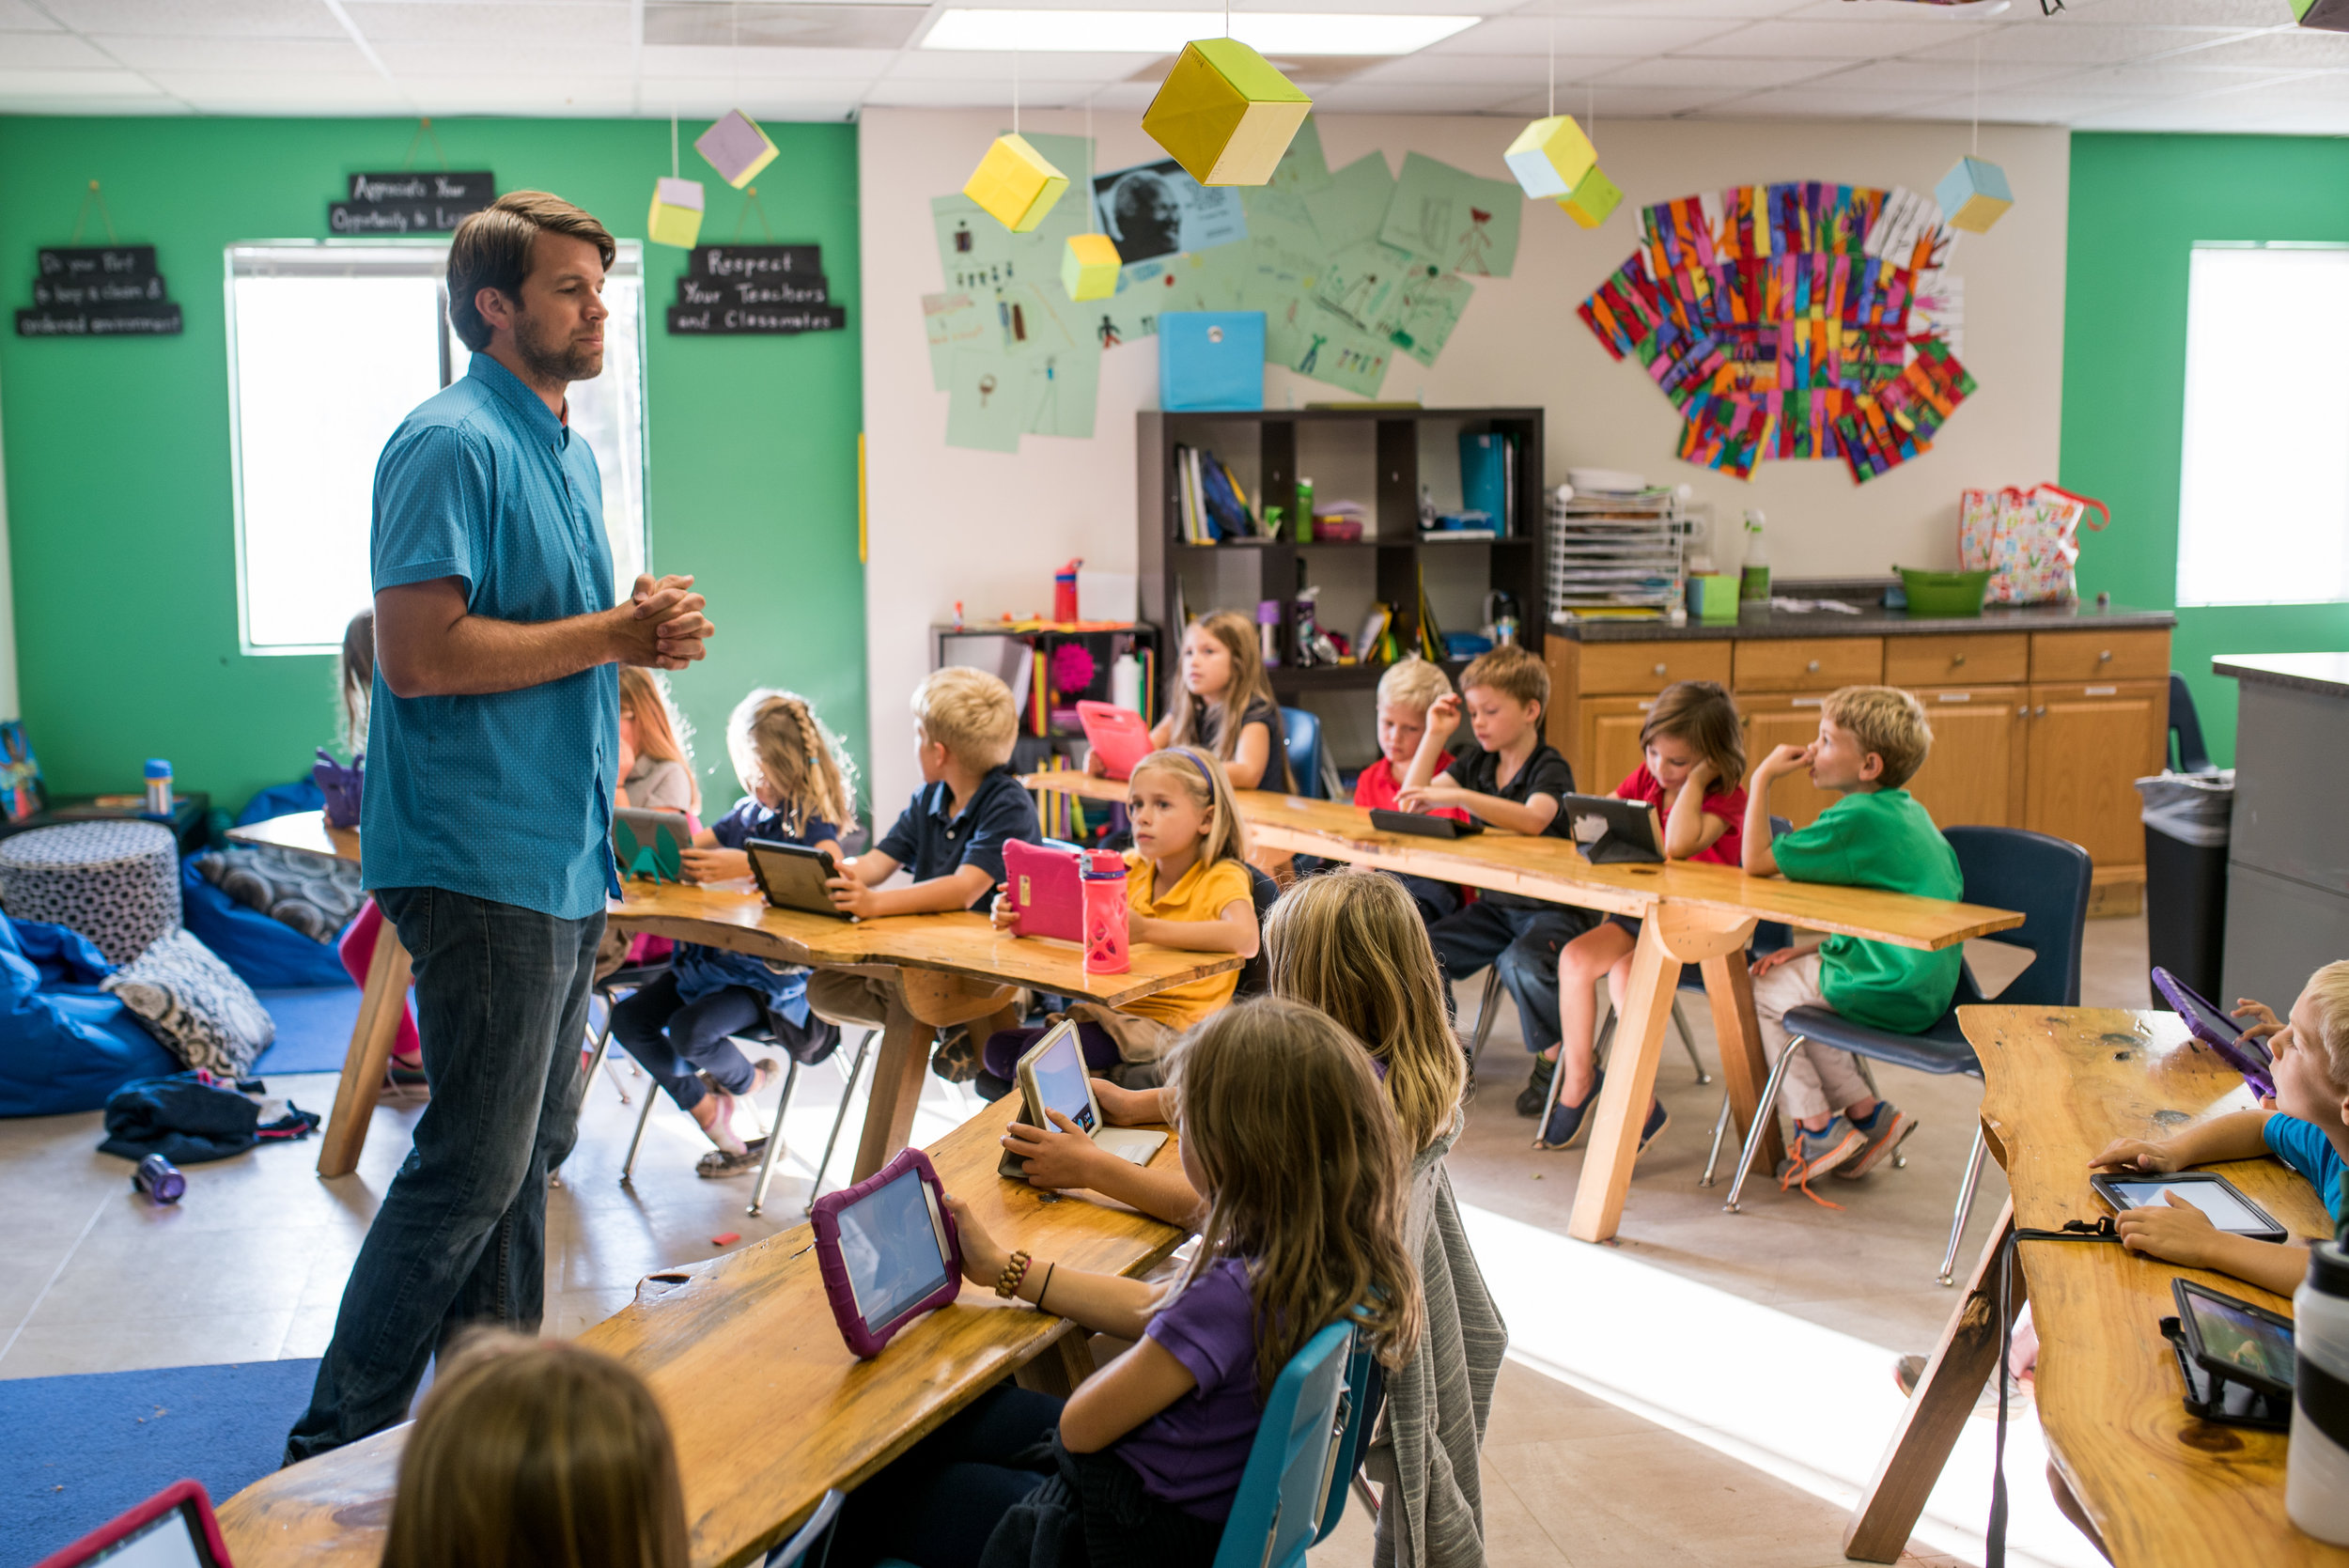 Teachers like Stephen Ownby bring an enthusiasm to the classroom that makes school more than a chore to get done, but a joy to experience.